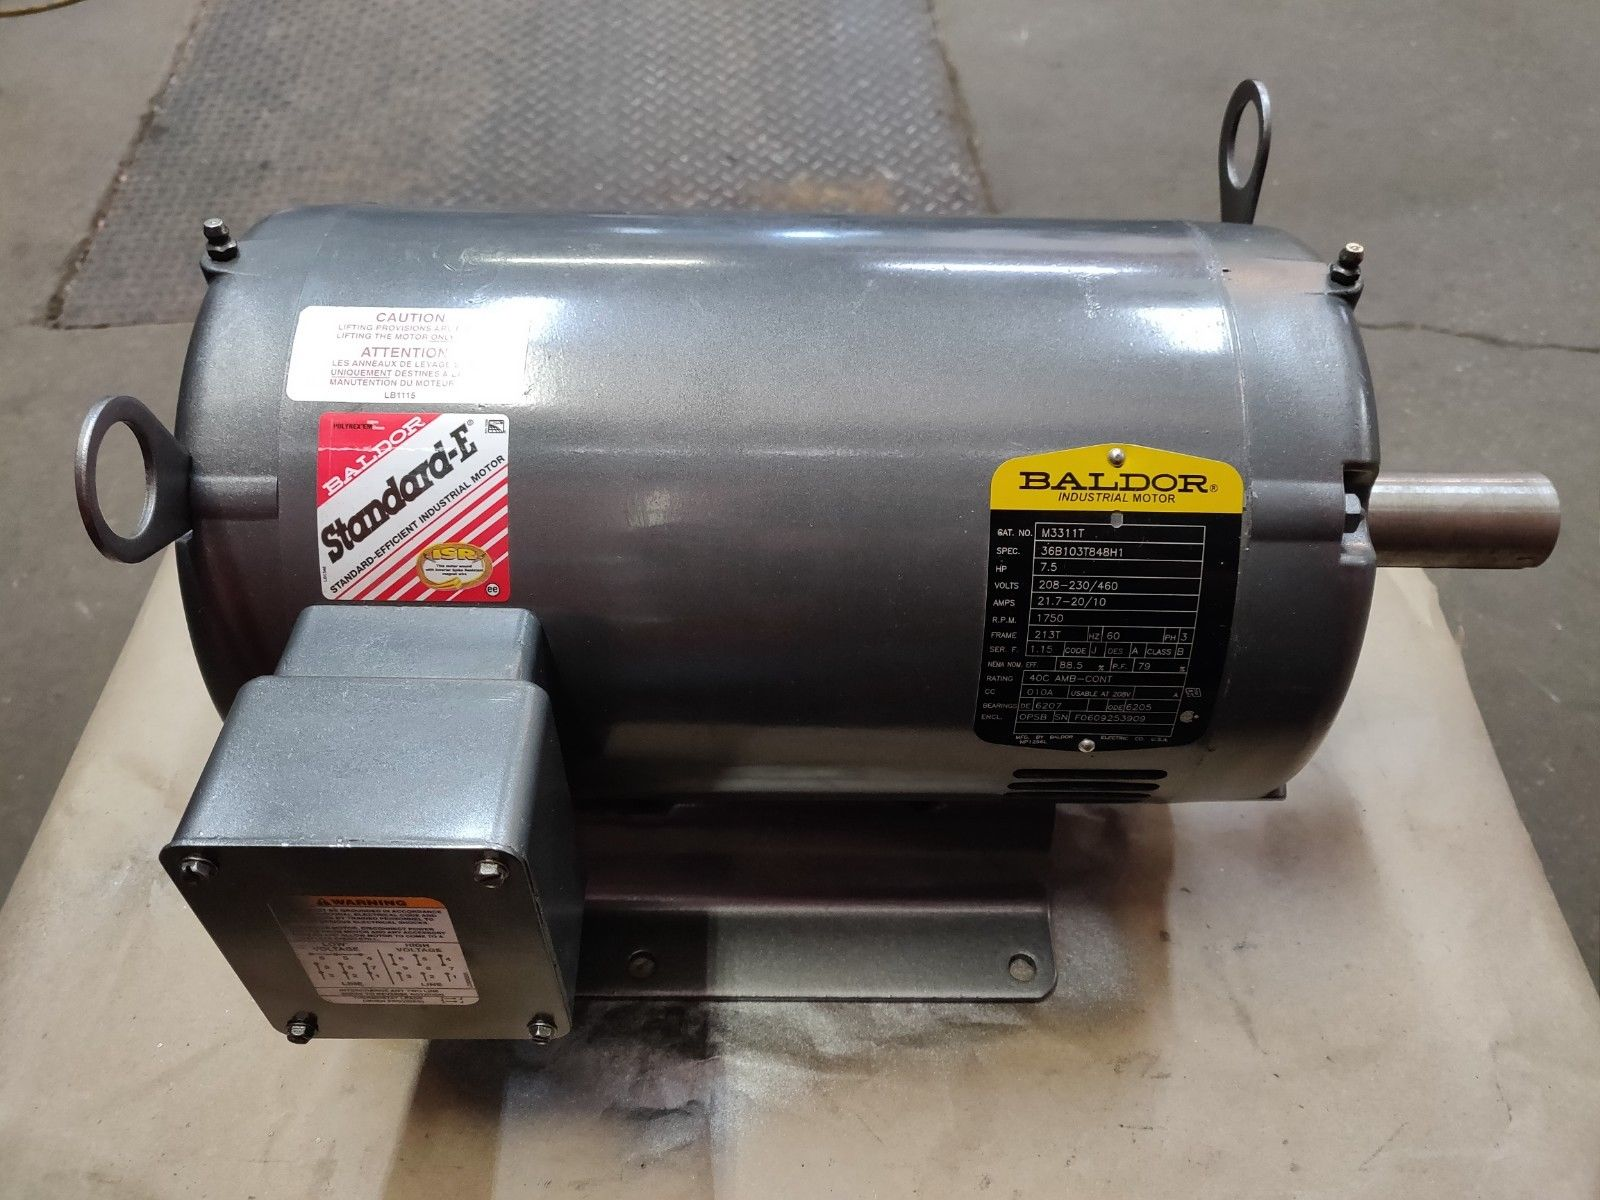 Baldor 3-Phase 7.5 HP Industrial Motor Cat No. M3311T